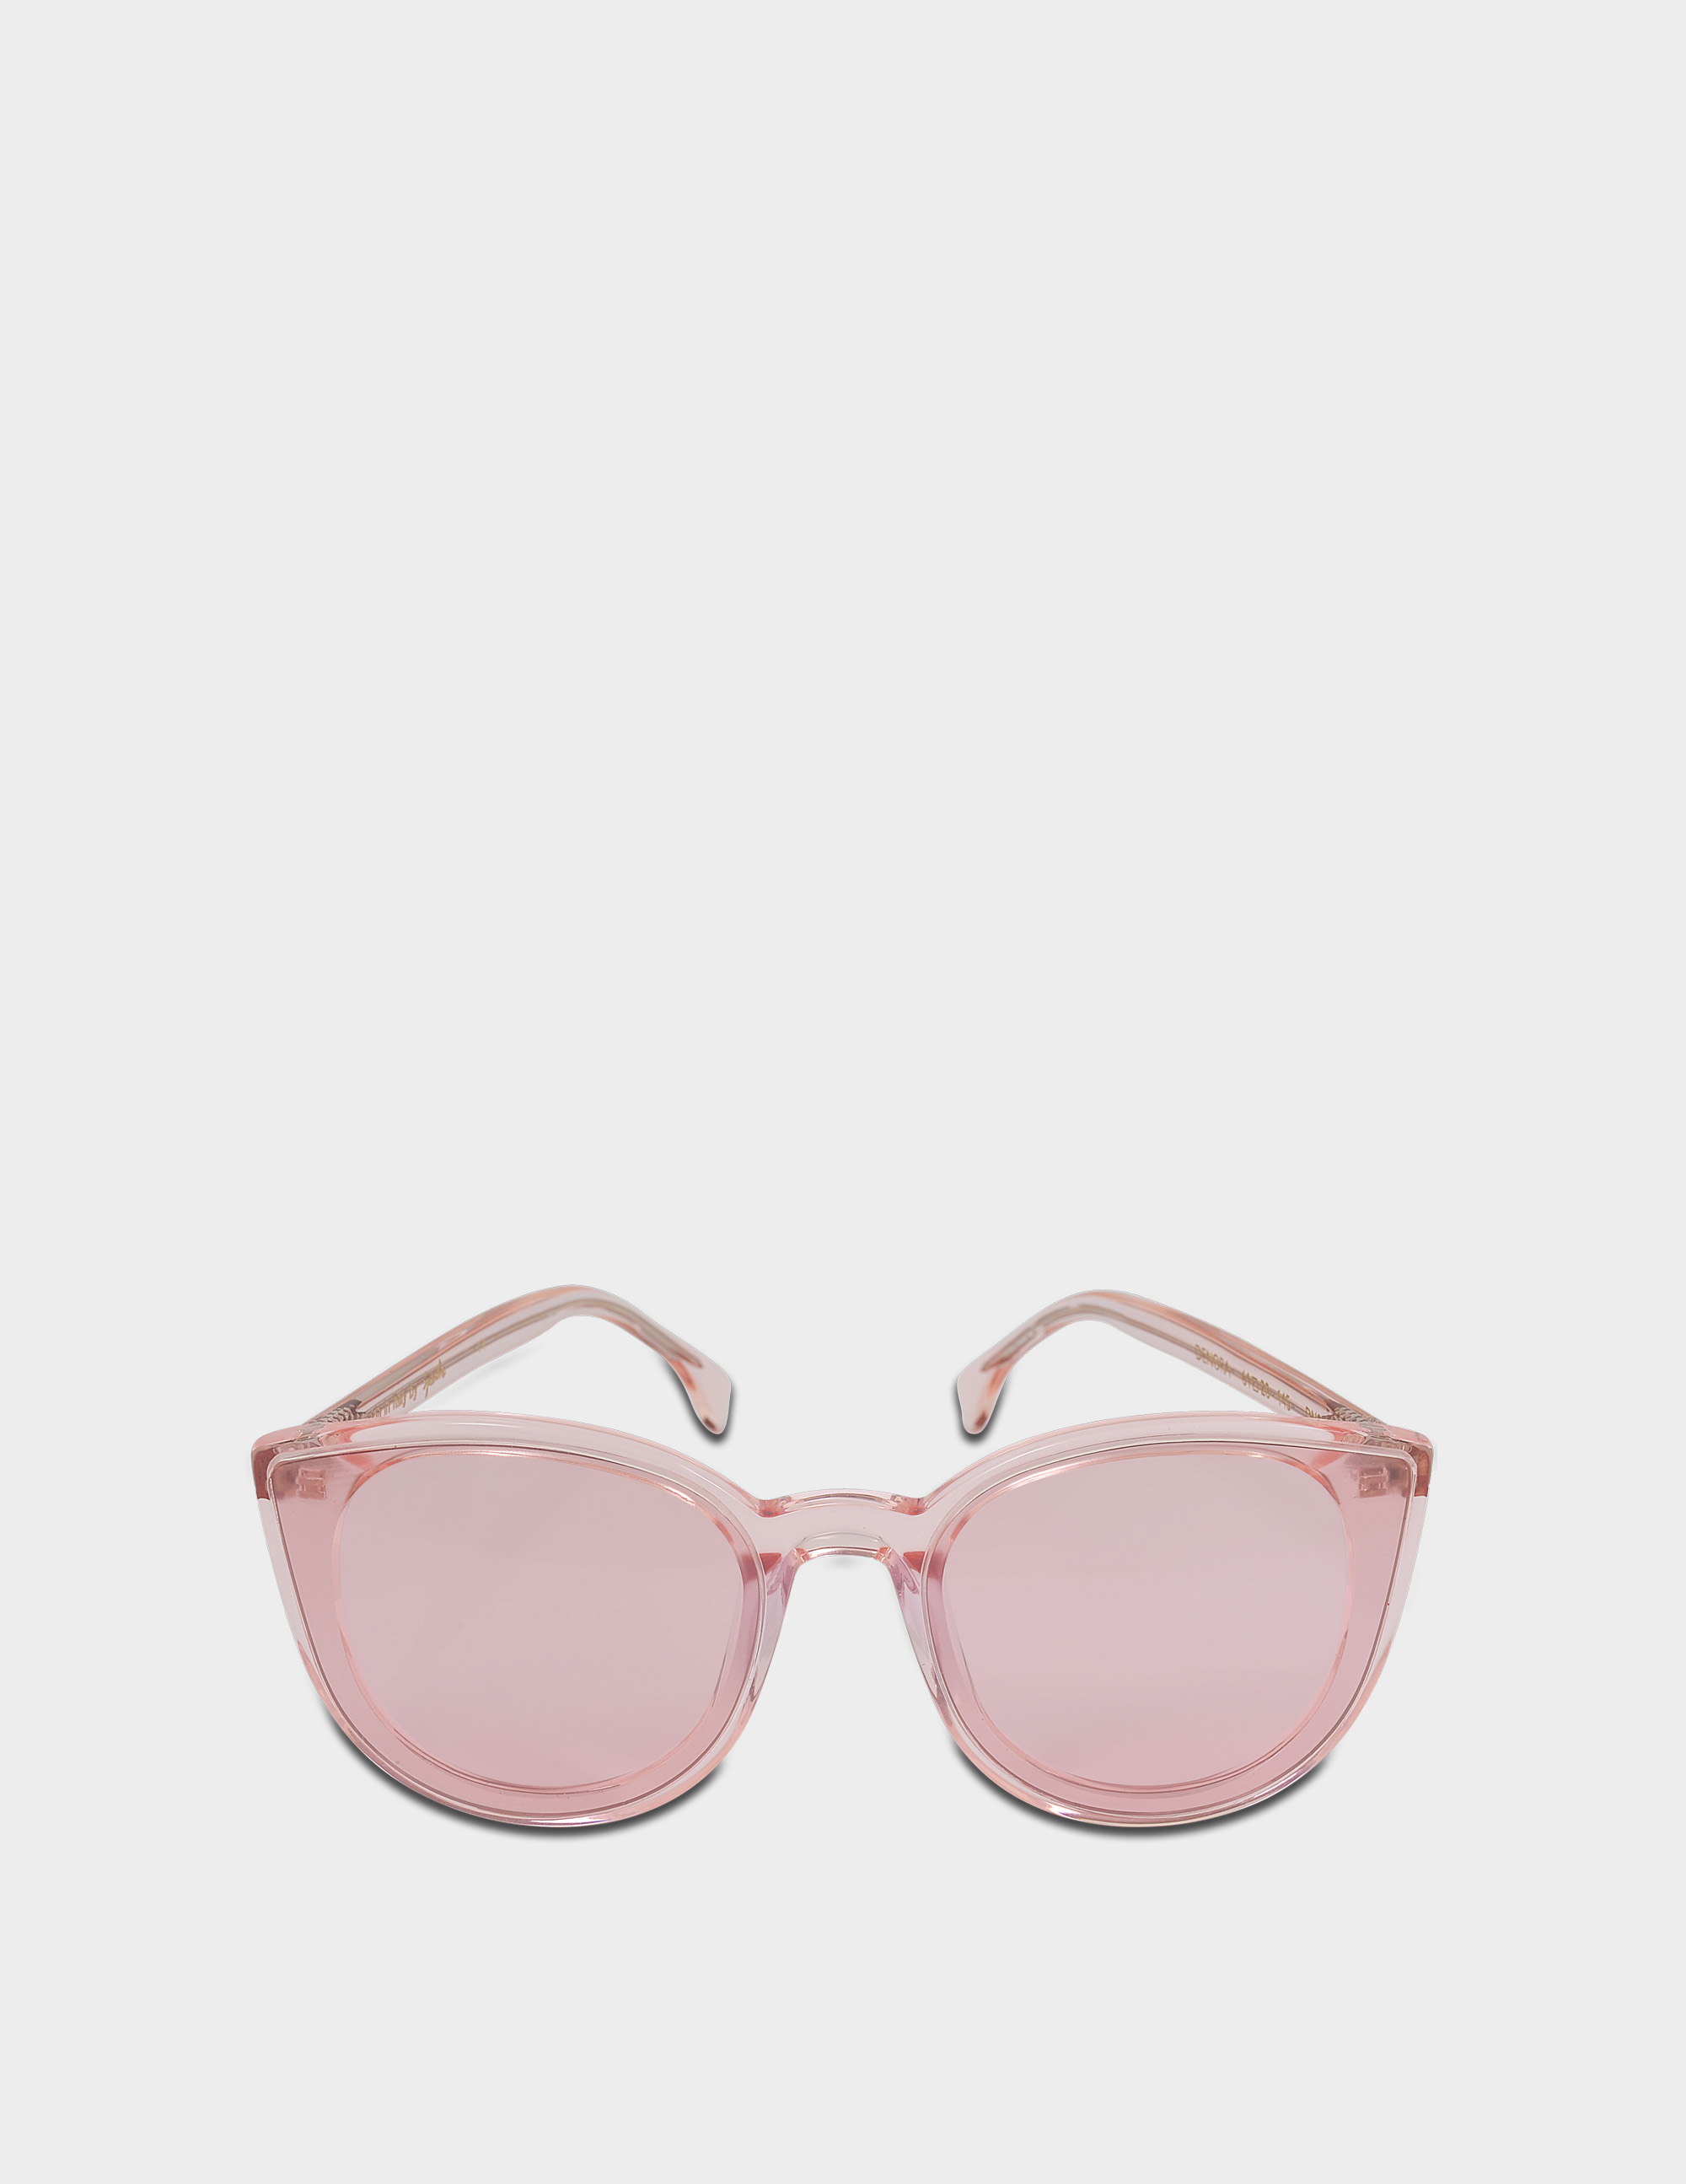 SPEKTRE DENORA SUNGLASSES IN CRYSTAL ROSE AND PINK PASTEL ULTRA THIN ACETATE